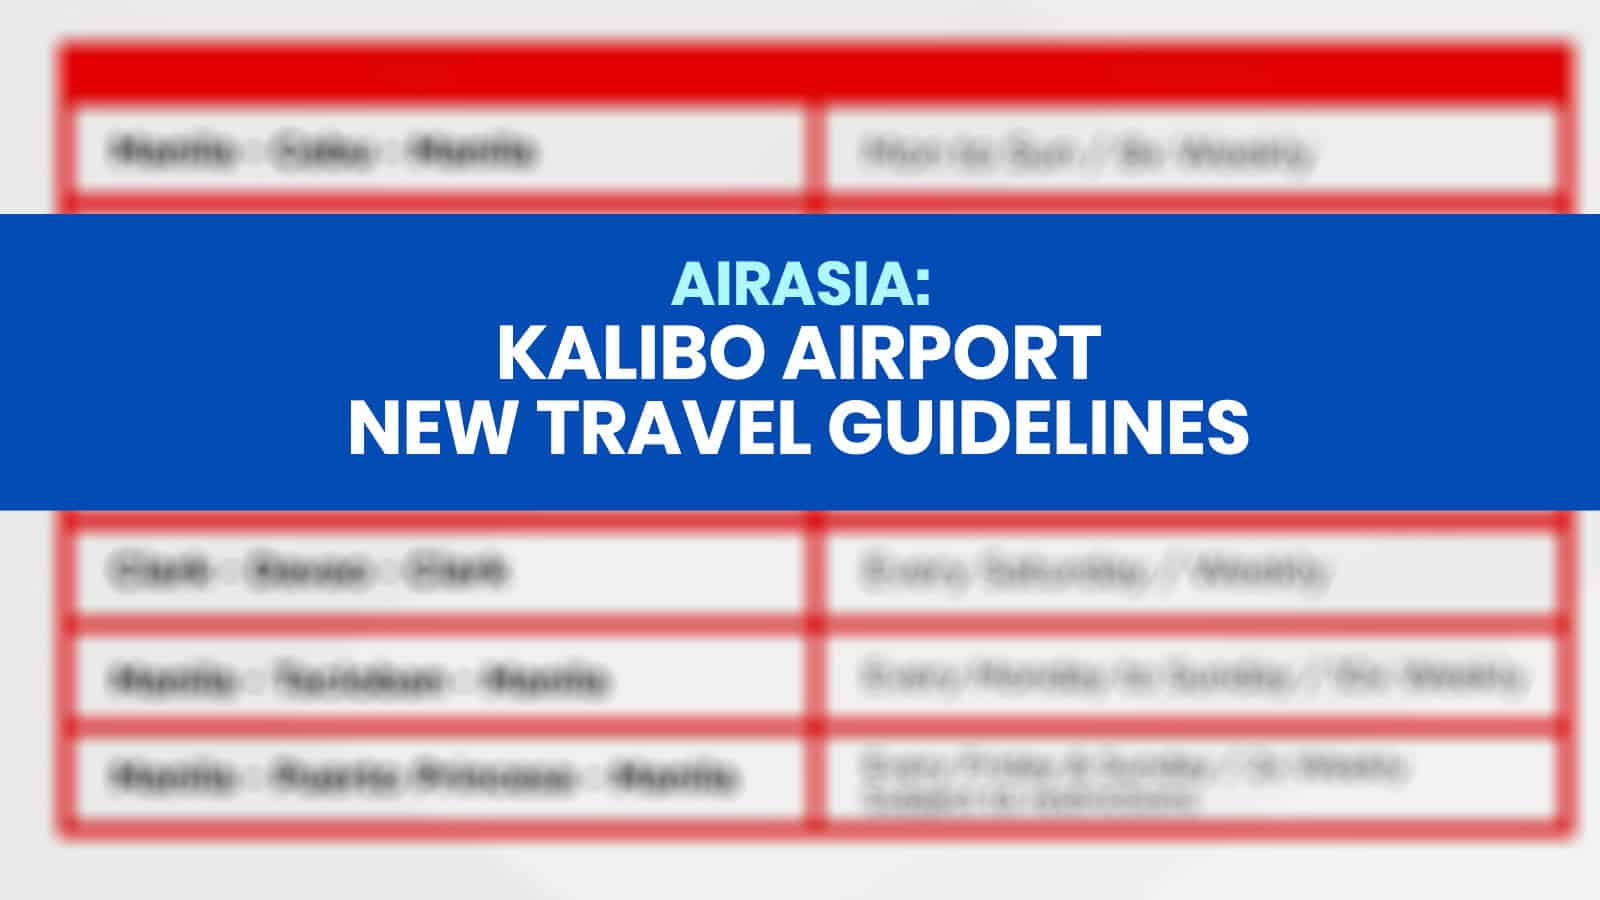 KALIBO AIRPORT: New Travel Guidelines & Requirements (AirAsia)